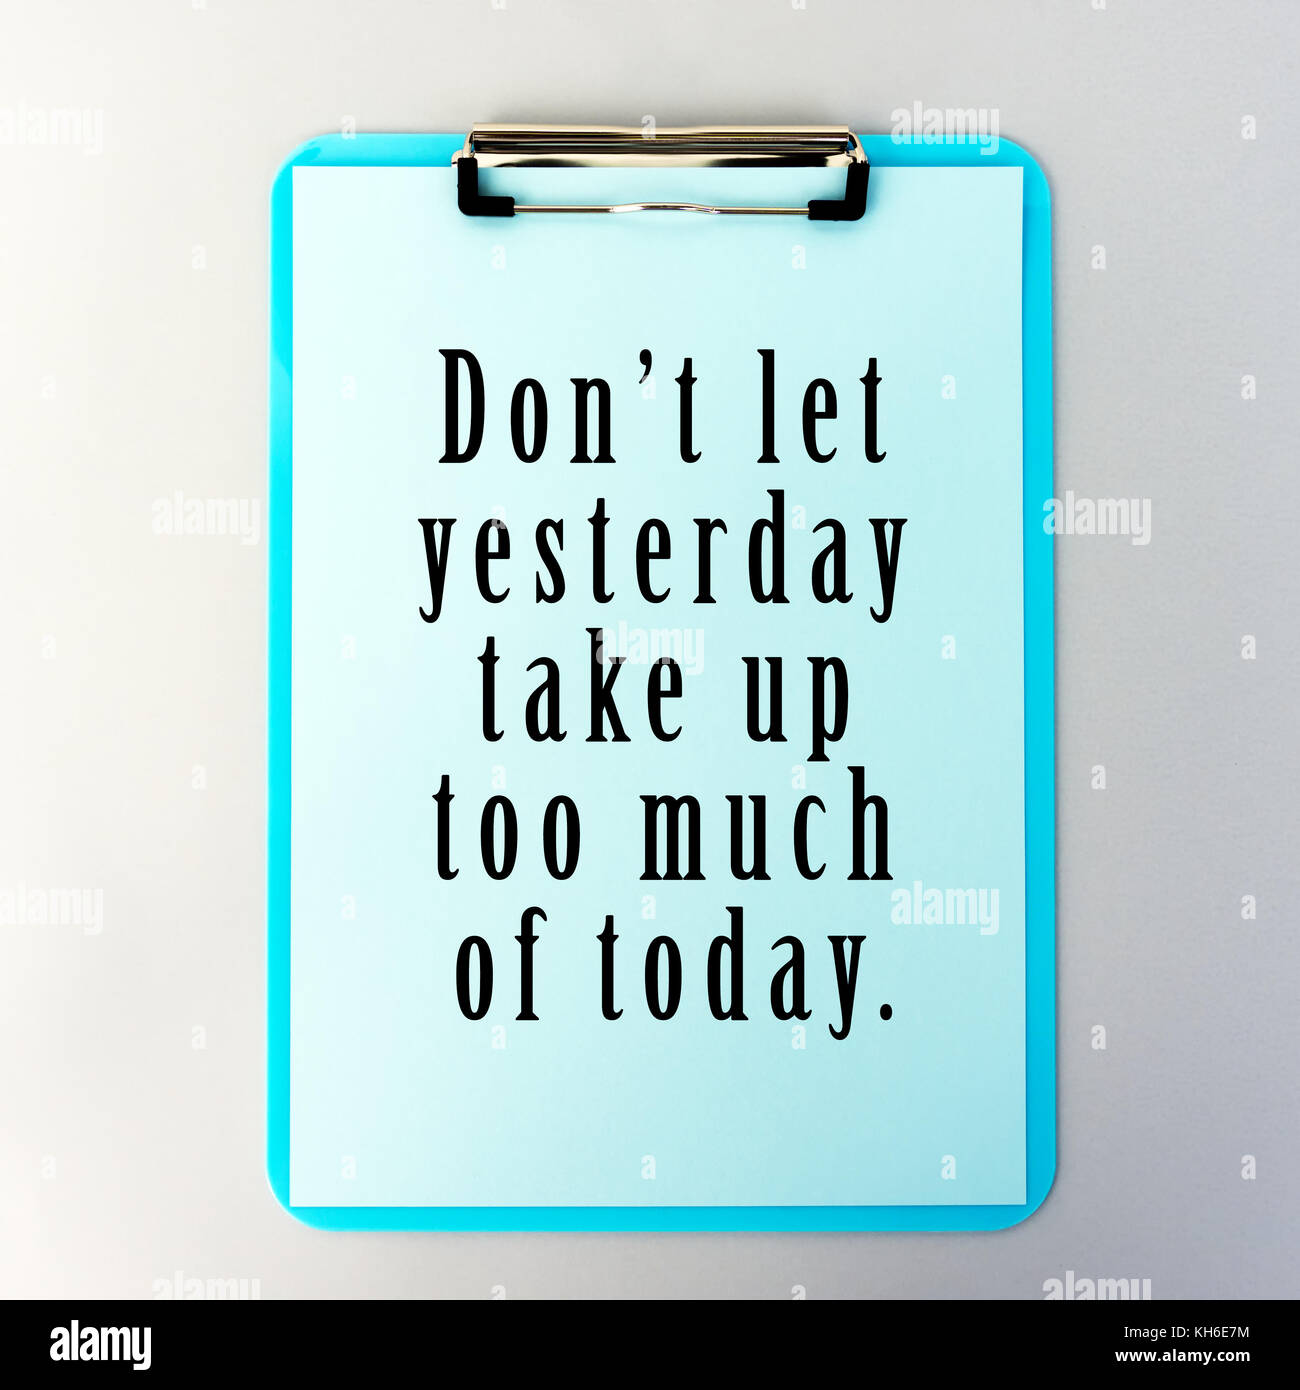 Life Inspirational And Motivational Quotes - Don't Let Yesterday Take Up Too Much Of Today. - Stock Image